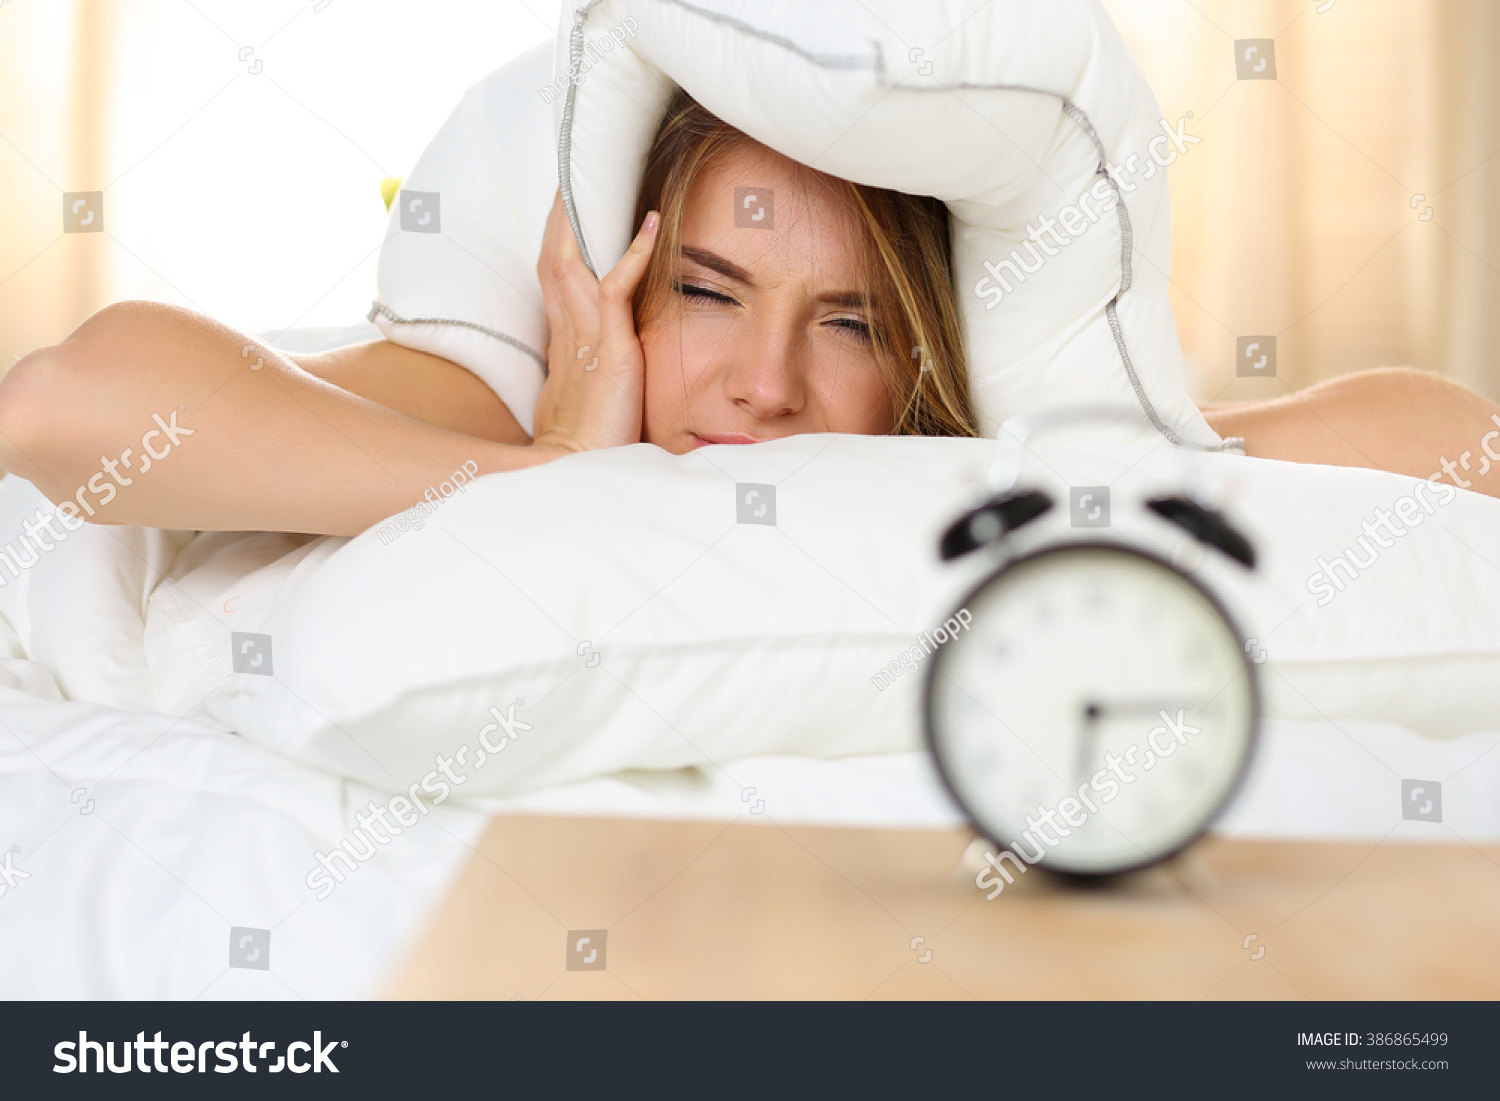 Young Beautiful Blonde Woman Lying In Bed Suffering From Alarm Clock Sound  Covering Head And Ears